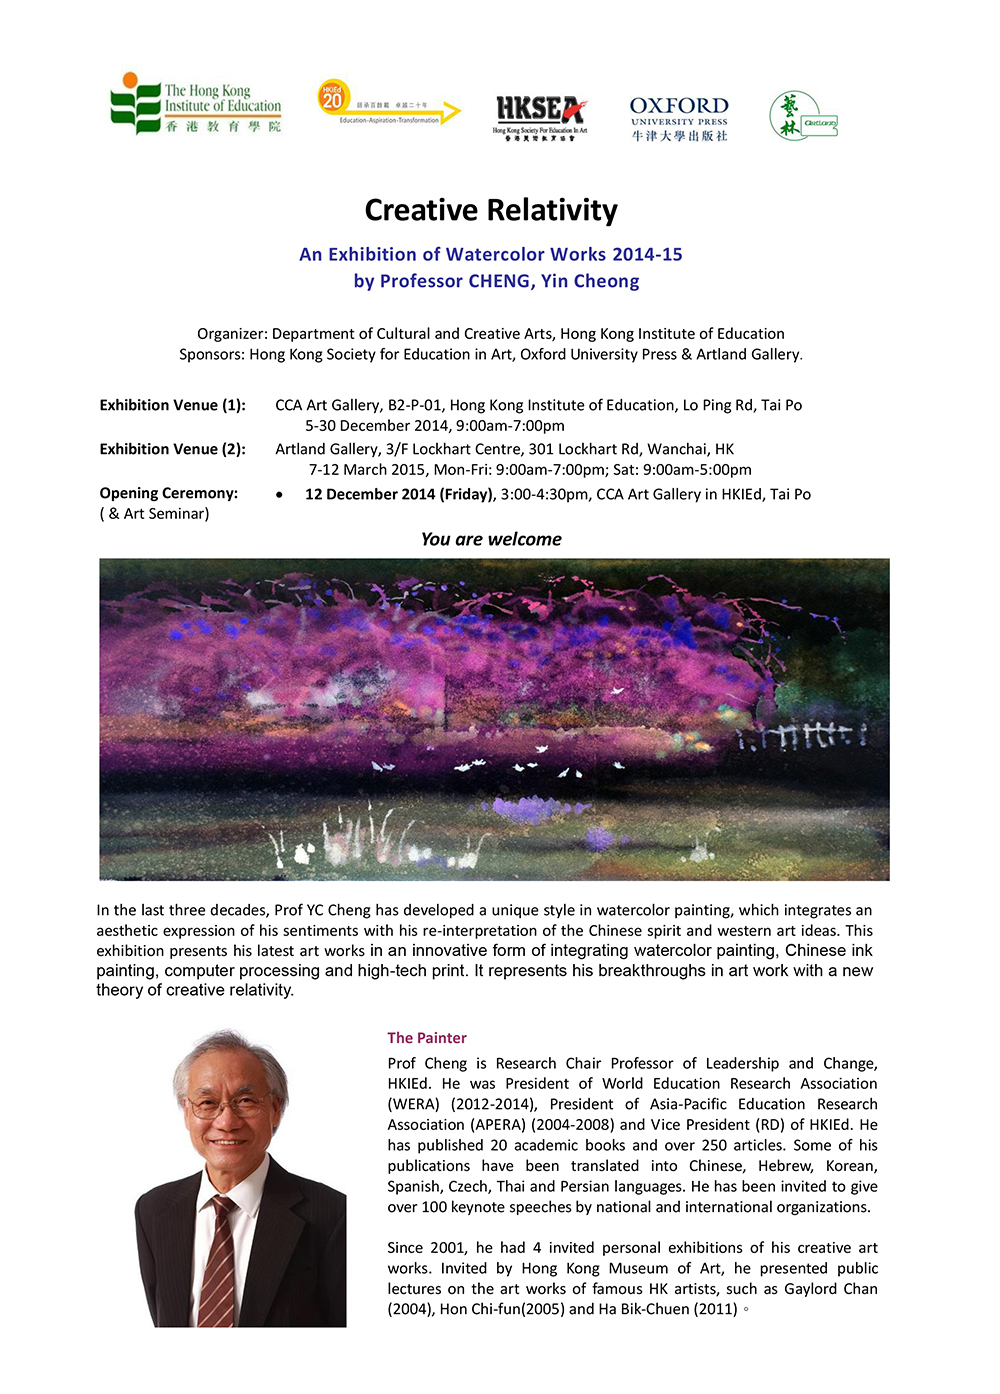 Creative Relativity - An Exhibition of Watercolor Works 2014-15 by Professor Cheng Yin Cheong